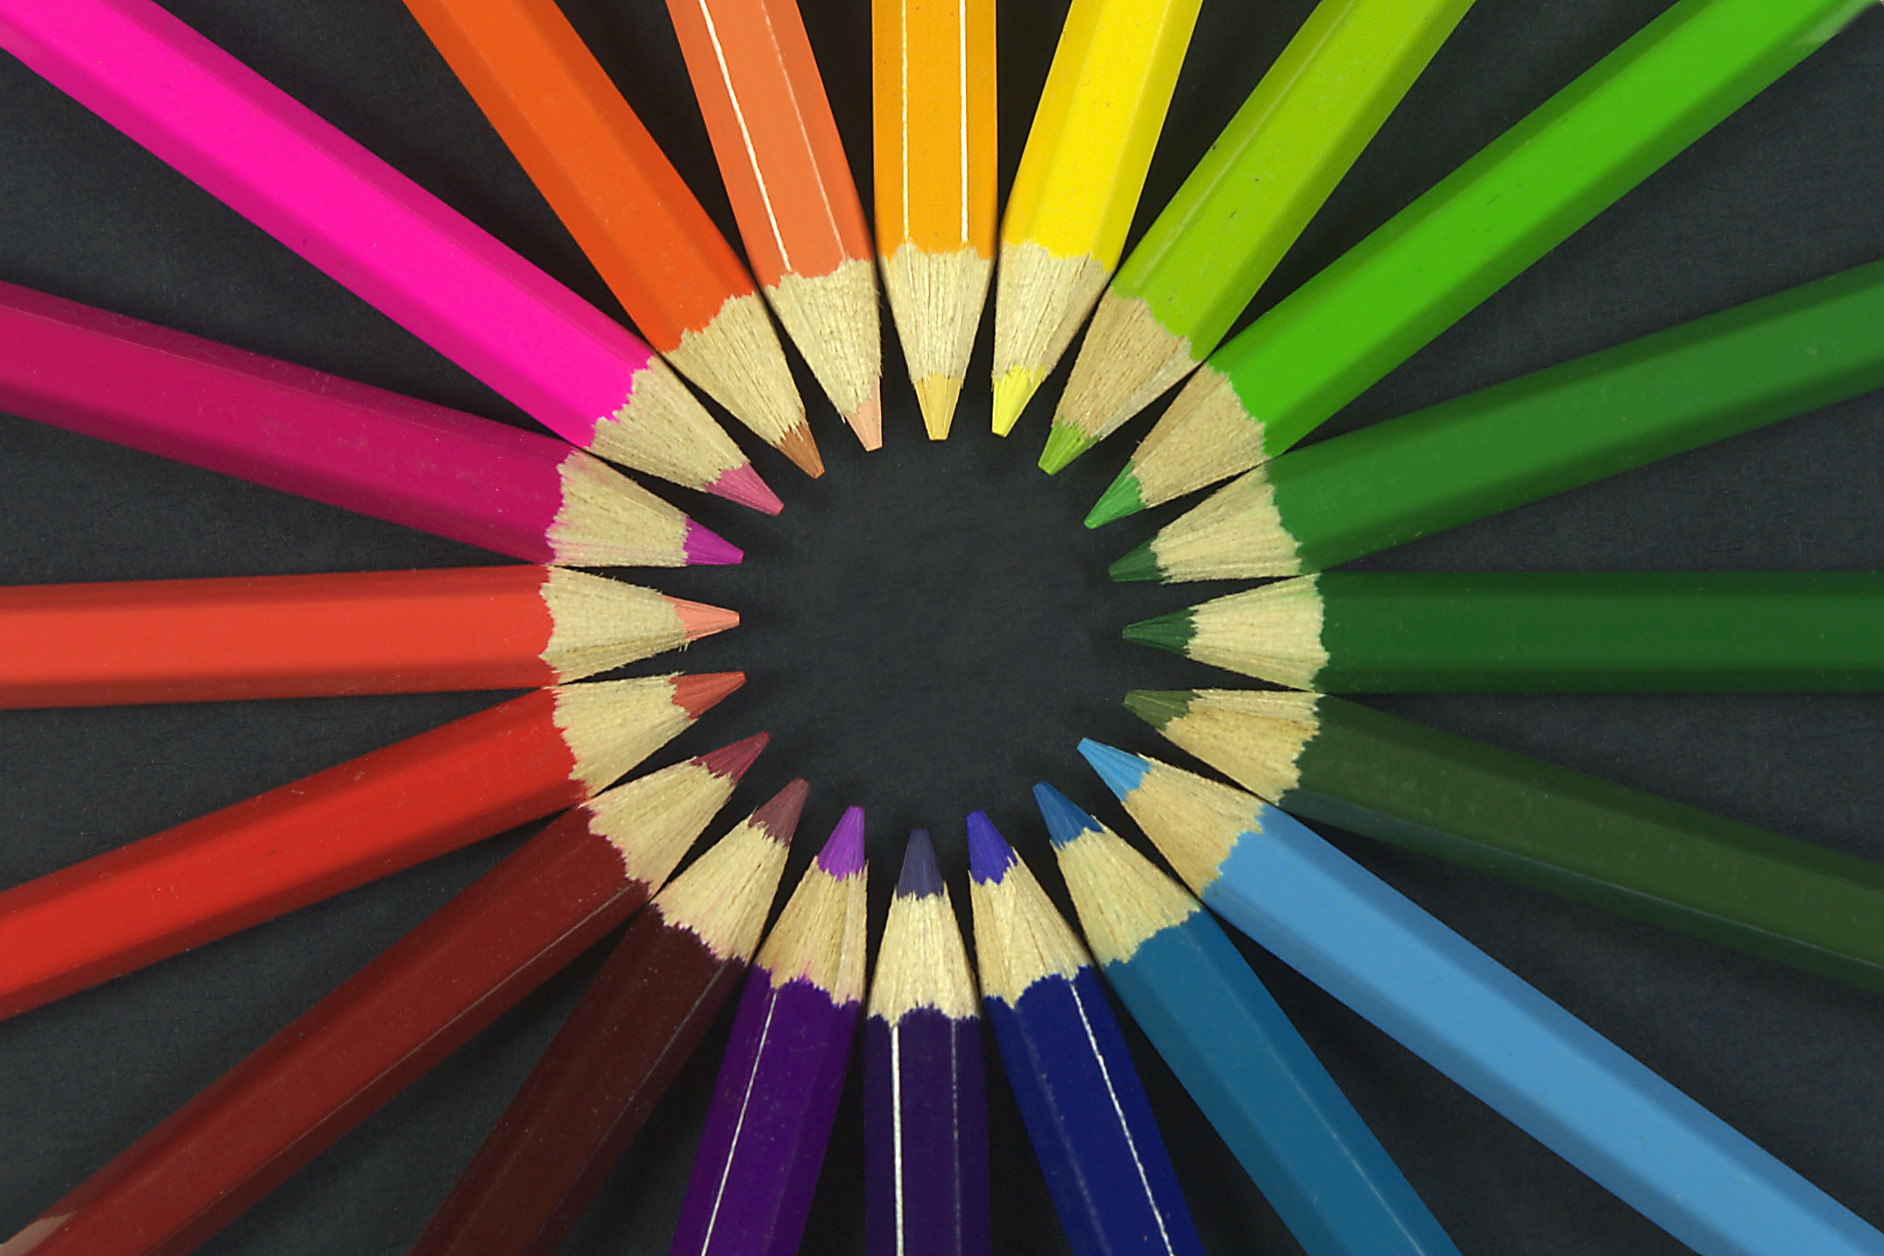 Wheel of pencils.jpeg